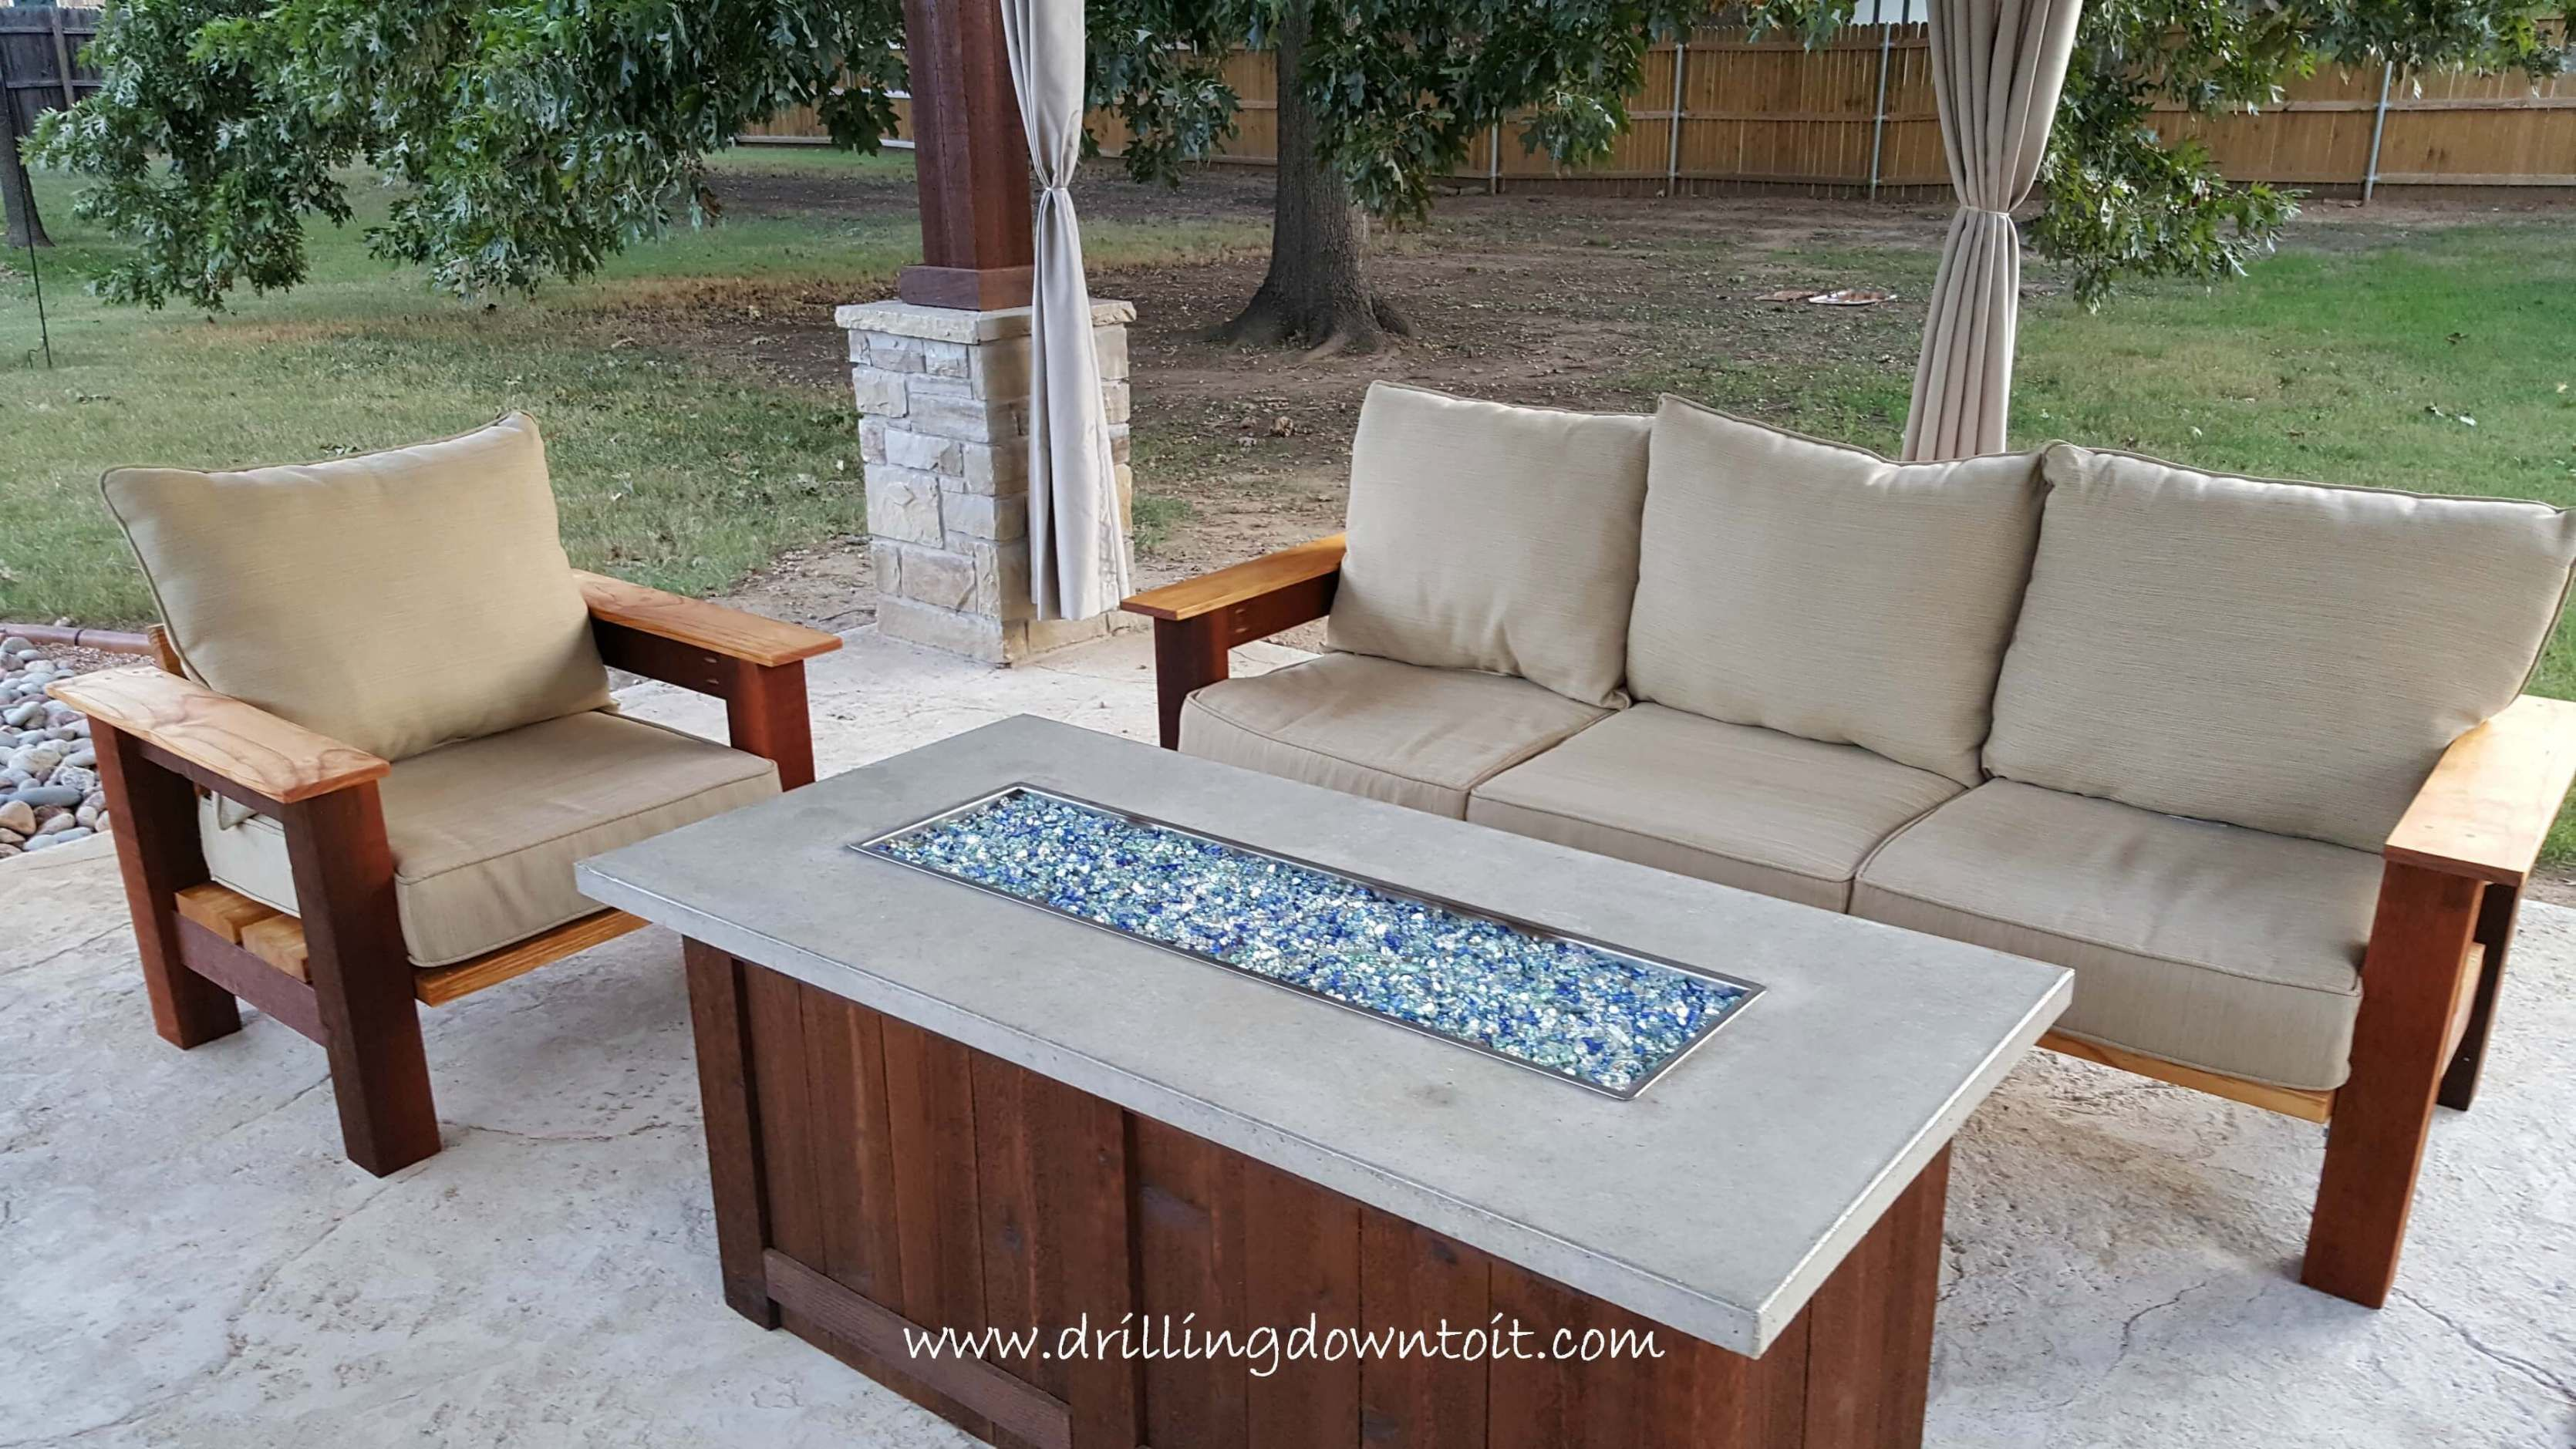 Diy Outdoor Couch Outdoor Couch Patio Furniture Layout Diy